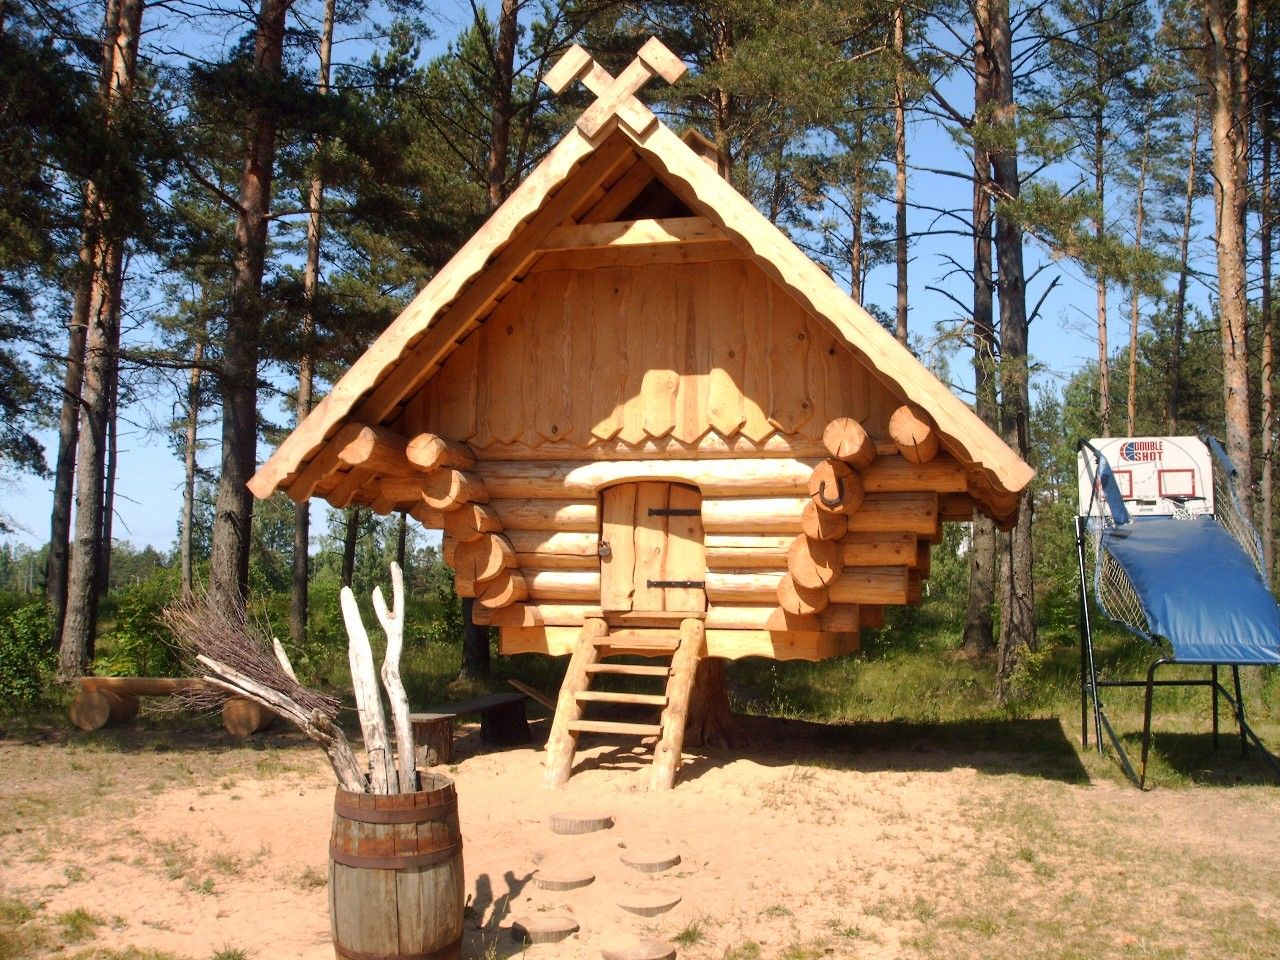 Log Cabin Design Ideas design small log cabin log cabin design ideas 21 rustic log cabin Log Cabin Kits Cabin Kits And Small Log Cabin Kits On Pinterest